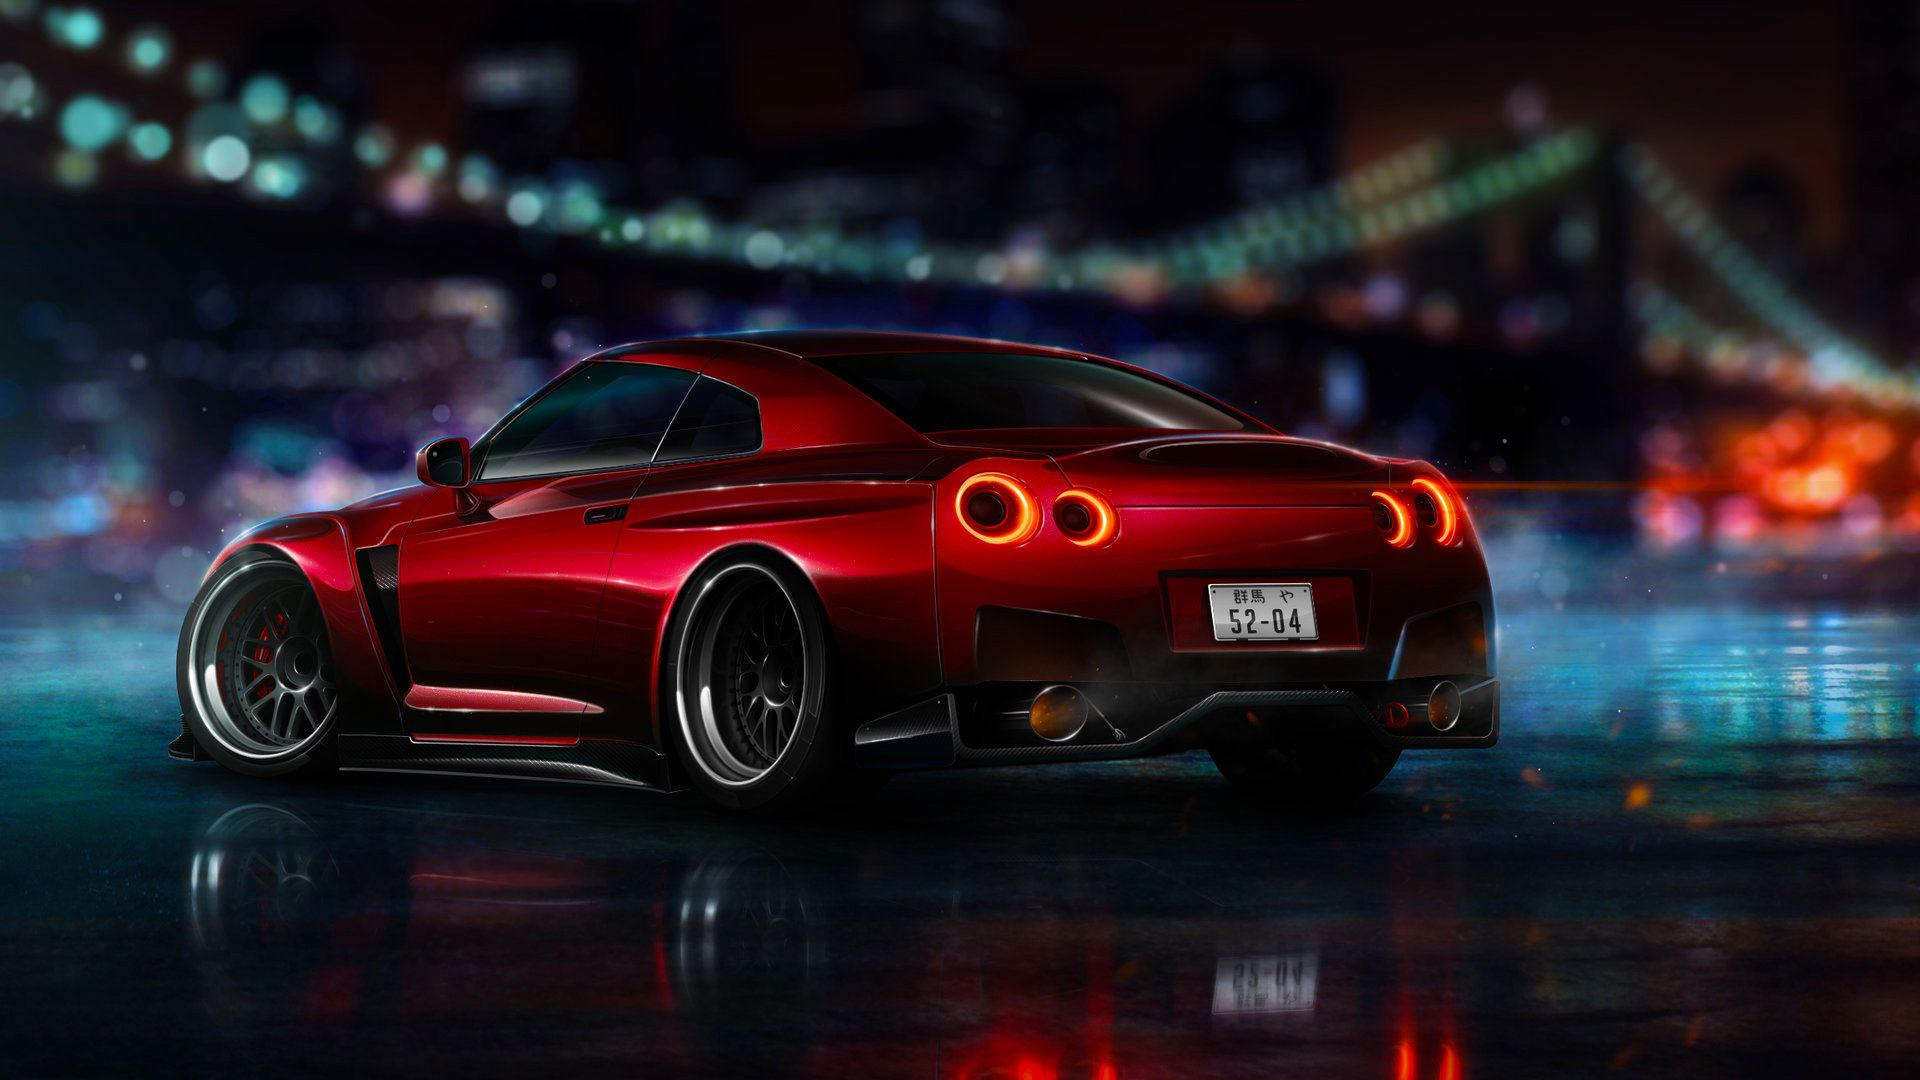 Nissan black style supercar wallpaper Gallery 1920x1080